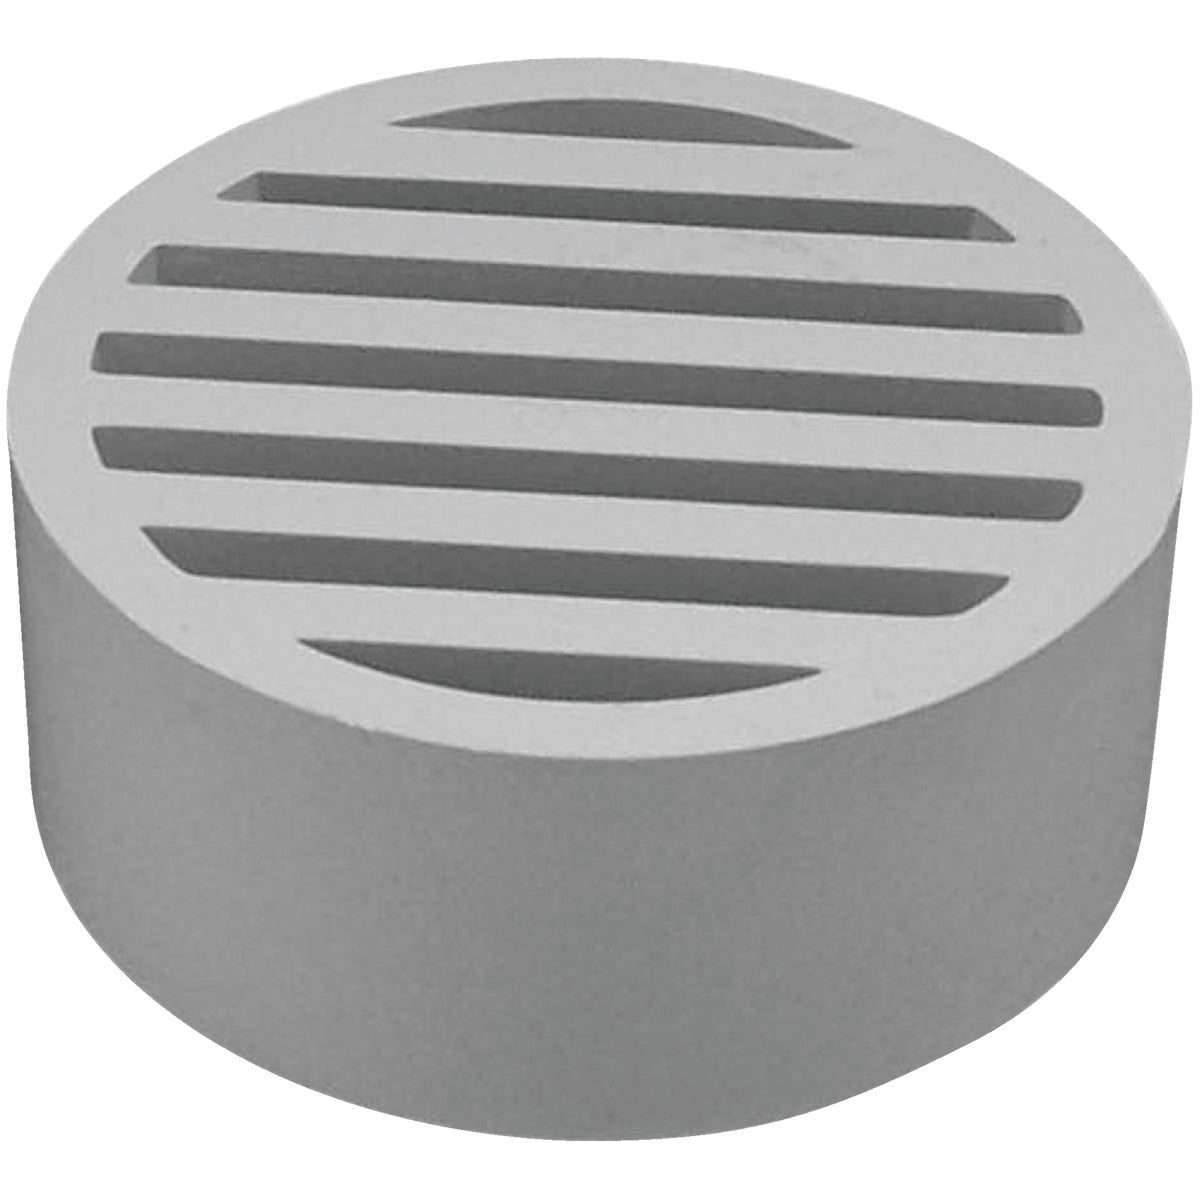 "3"" SCH30 FLR STRAINER - 69230 by Genova Inc"